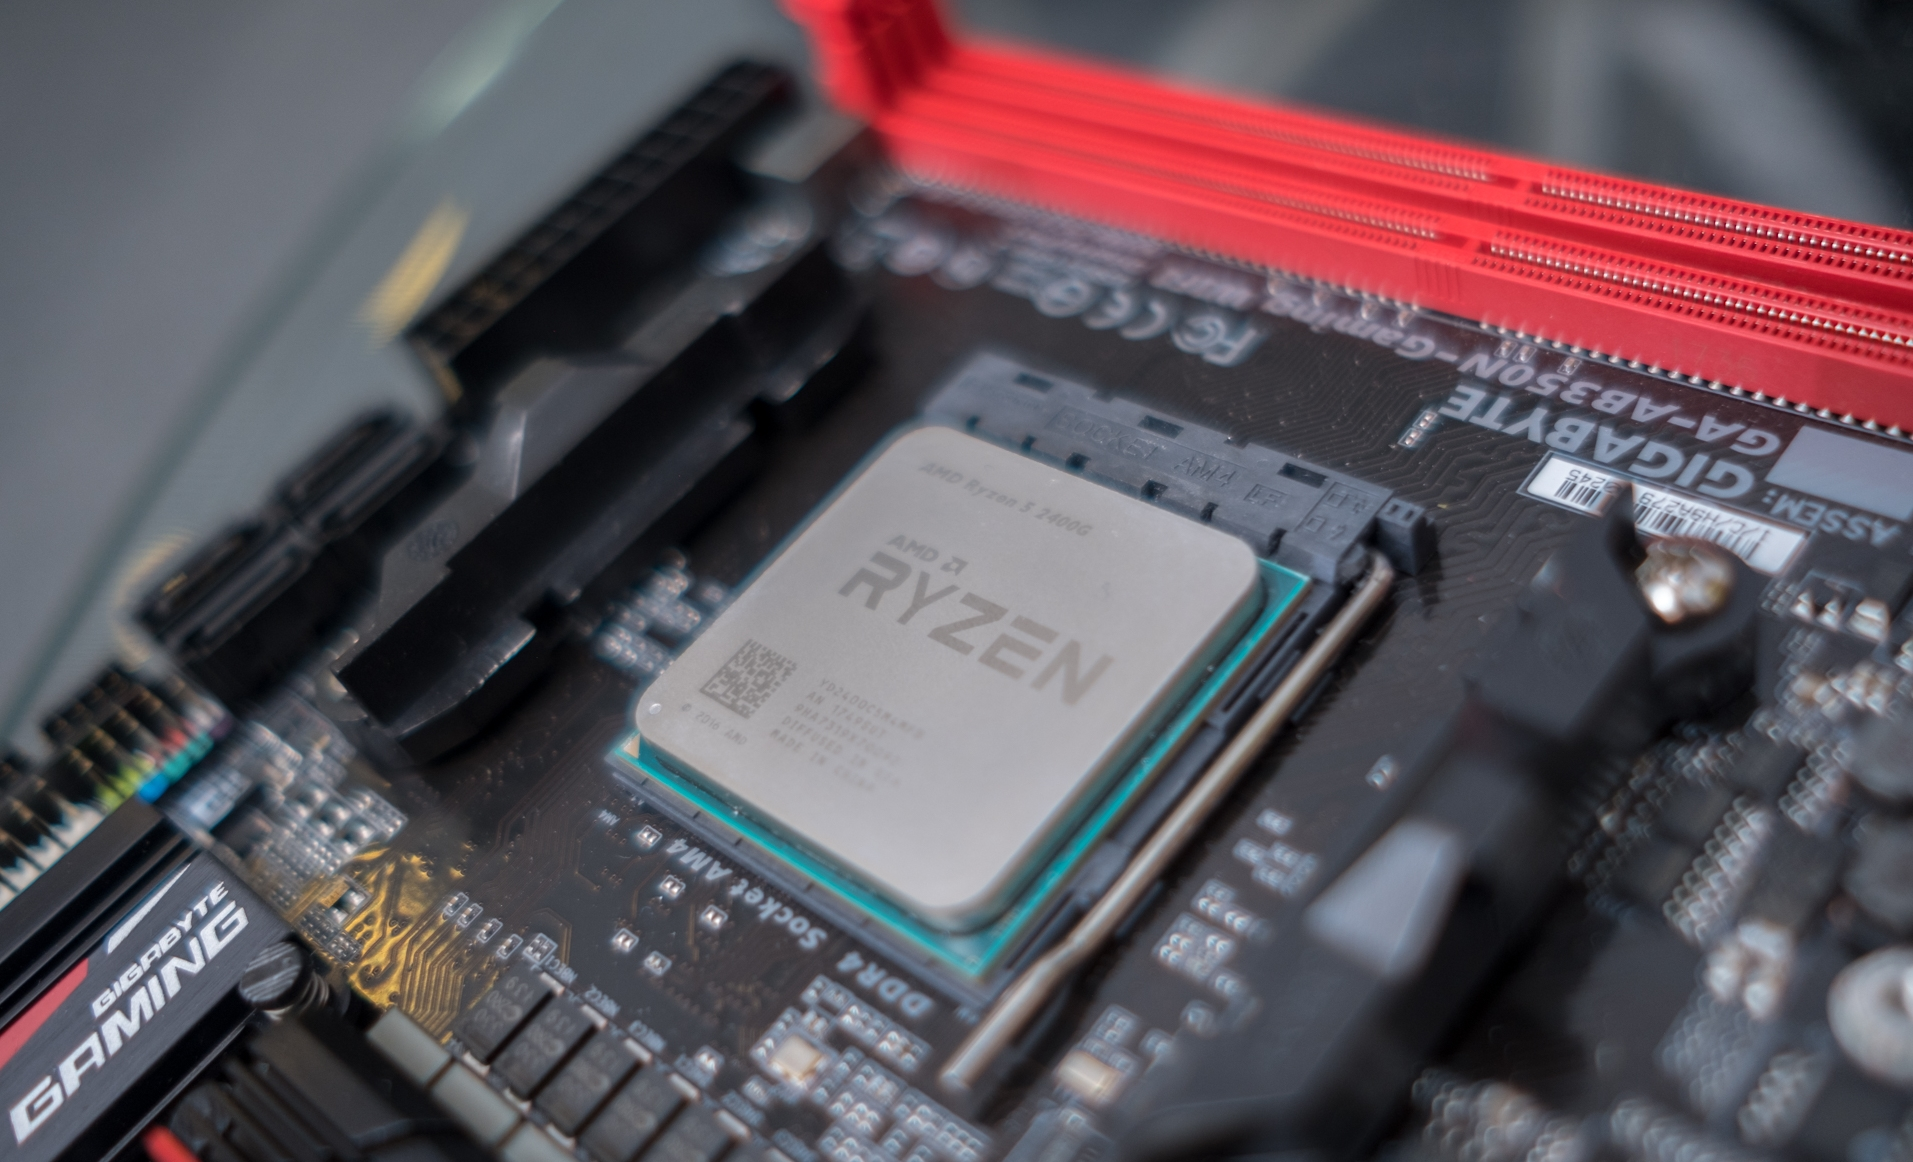 AMD processors going back to 2011 suffer from worrying security holes